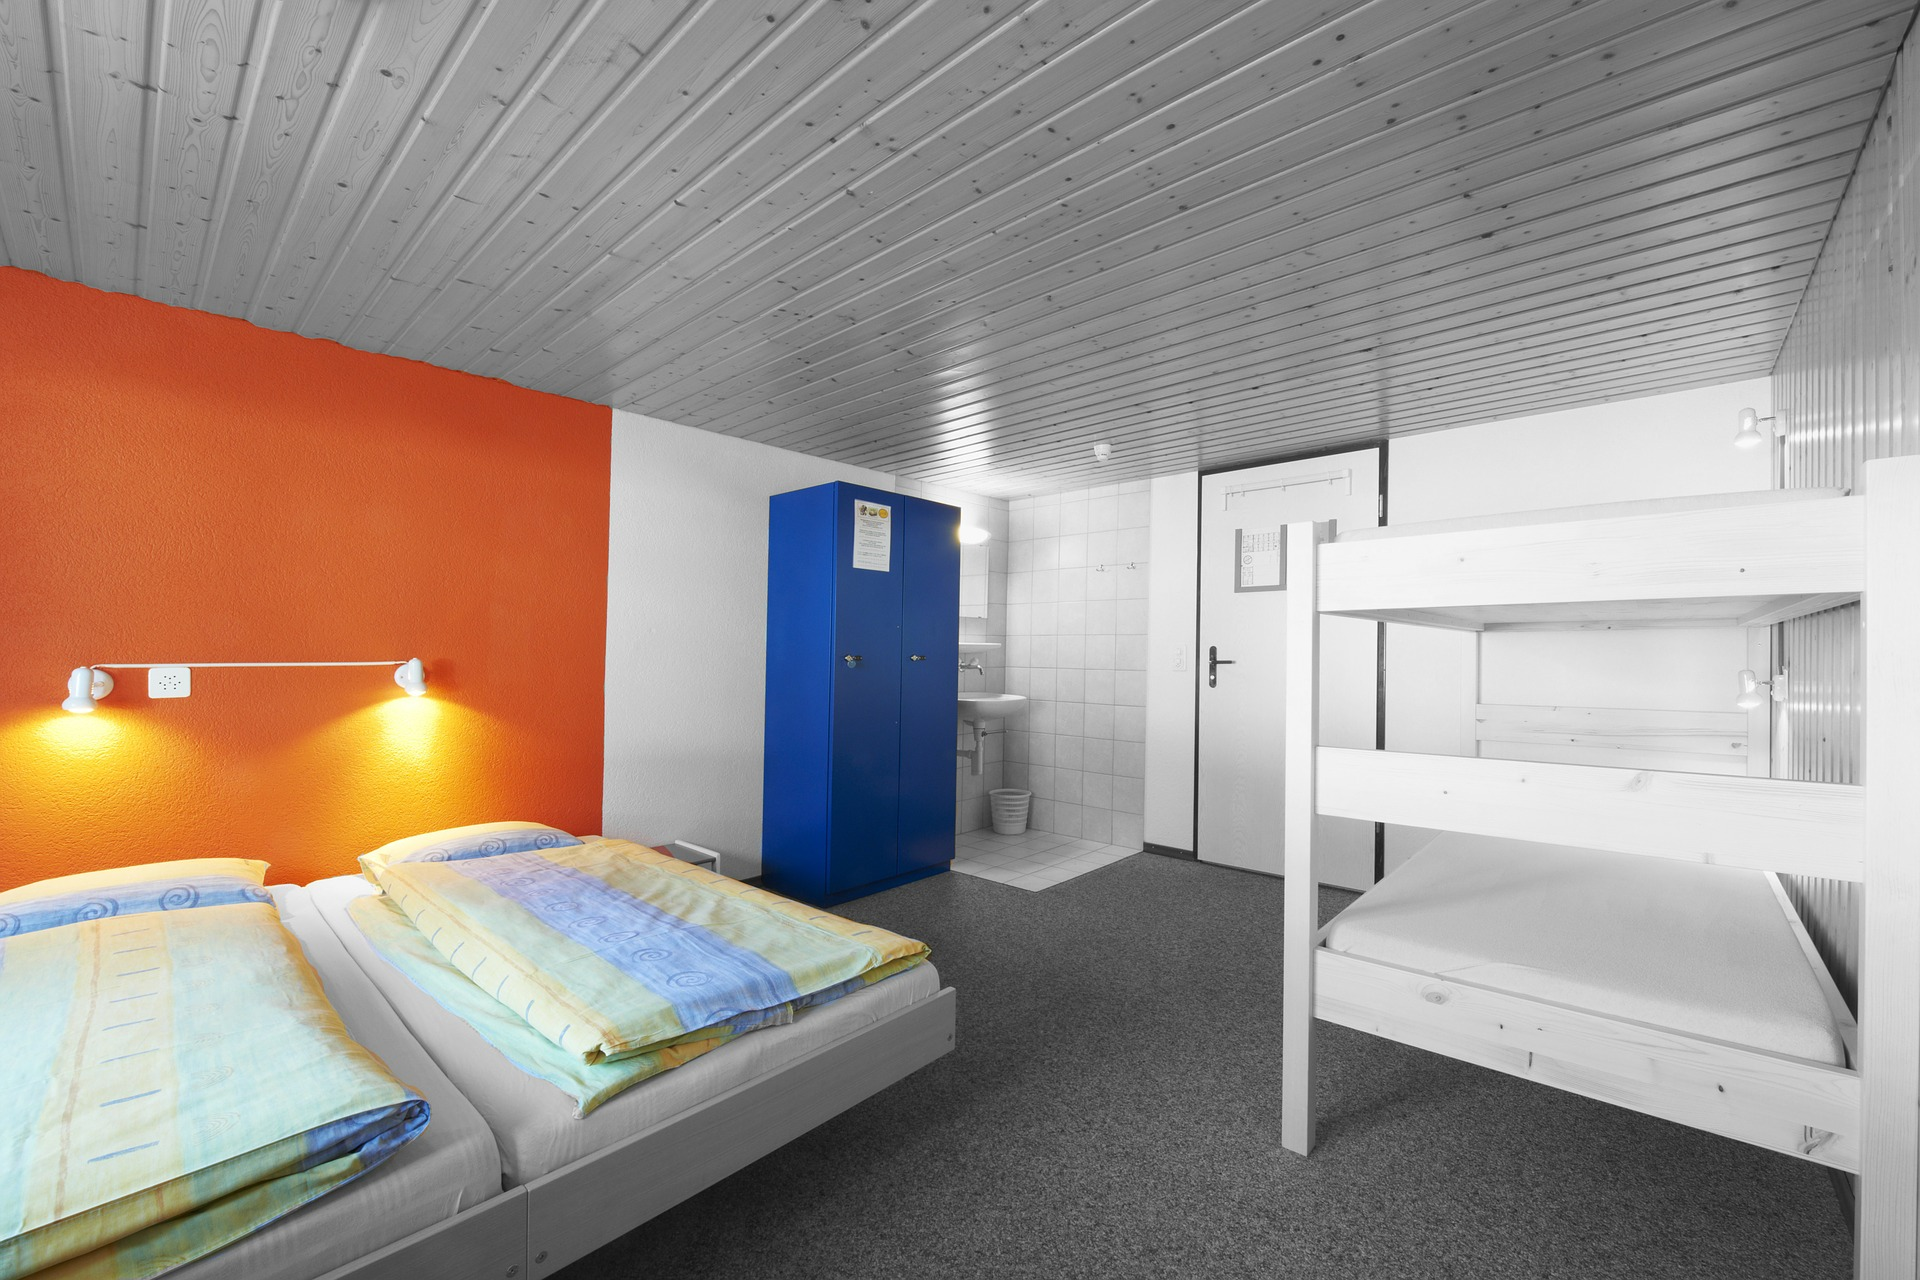 Beds in a hostel dorm room is a common sleeping place for digital nomads.